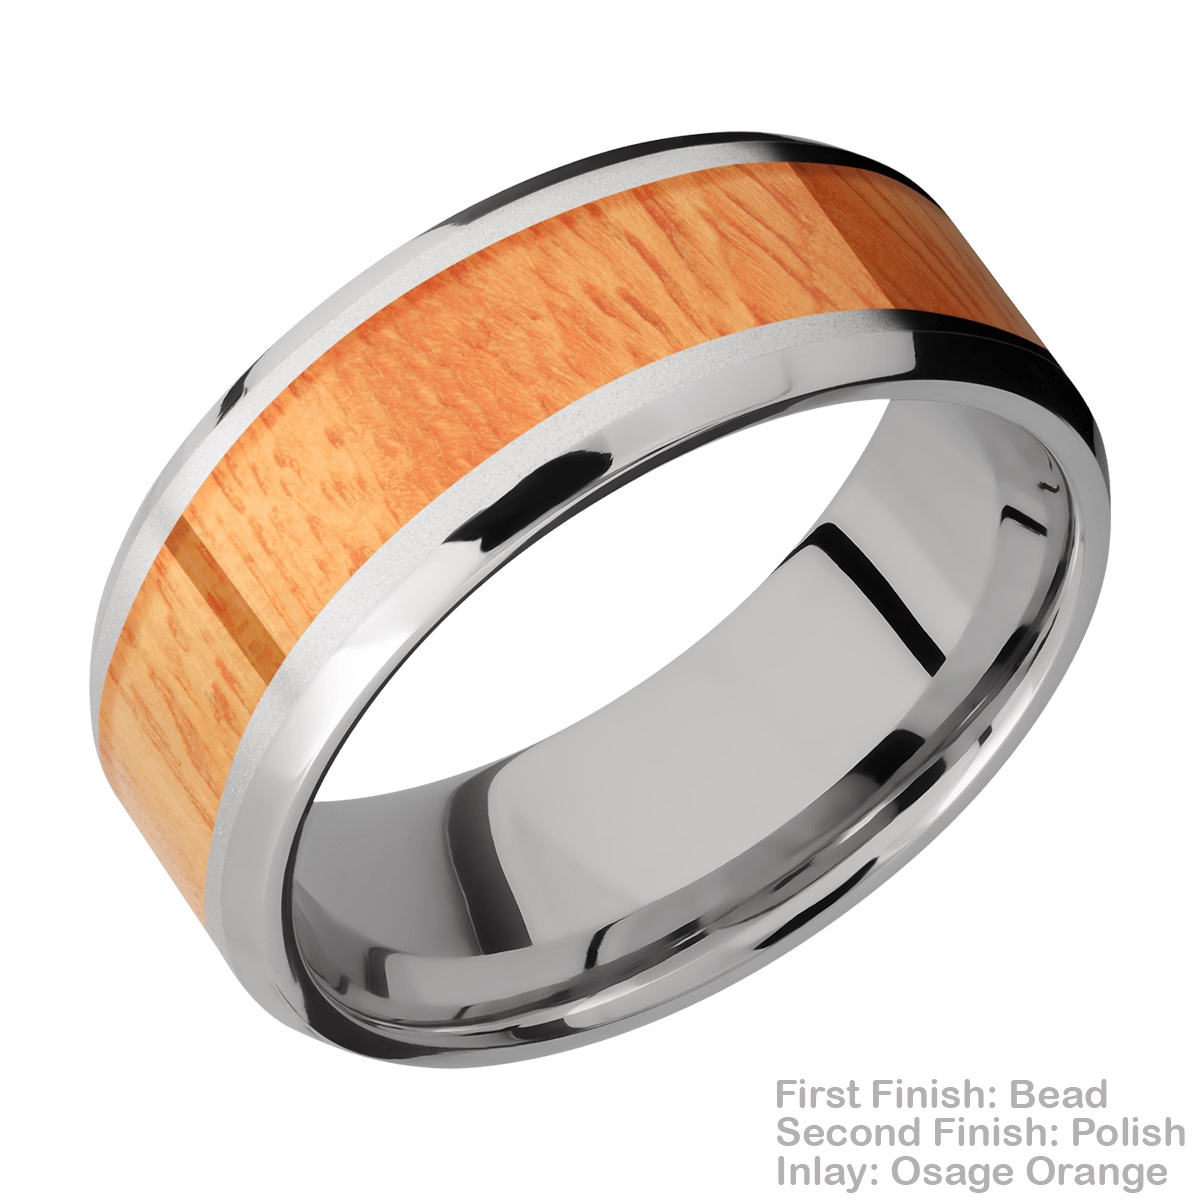 Lashbrook CC8B15(NS)/HARDWOOD Cobalt Chrome Wedding Ring or Band Alternative View 5